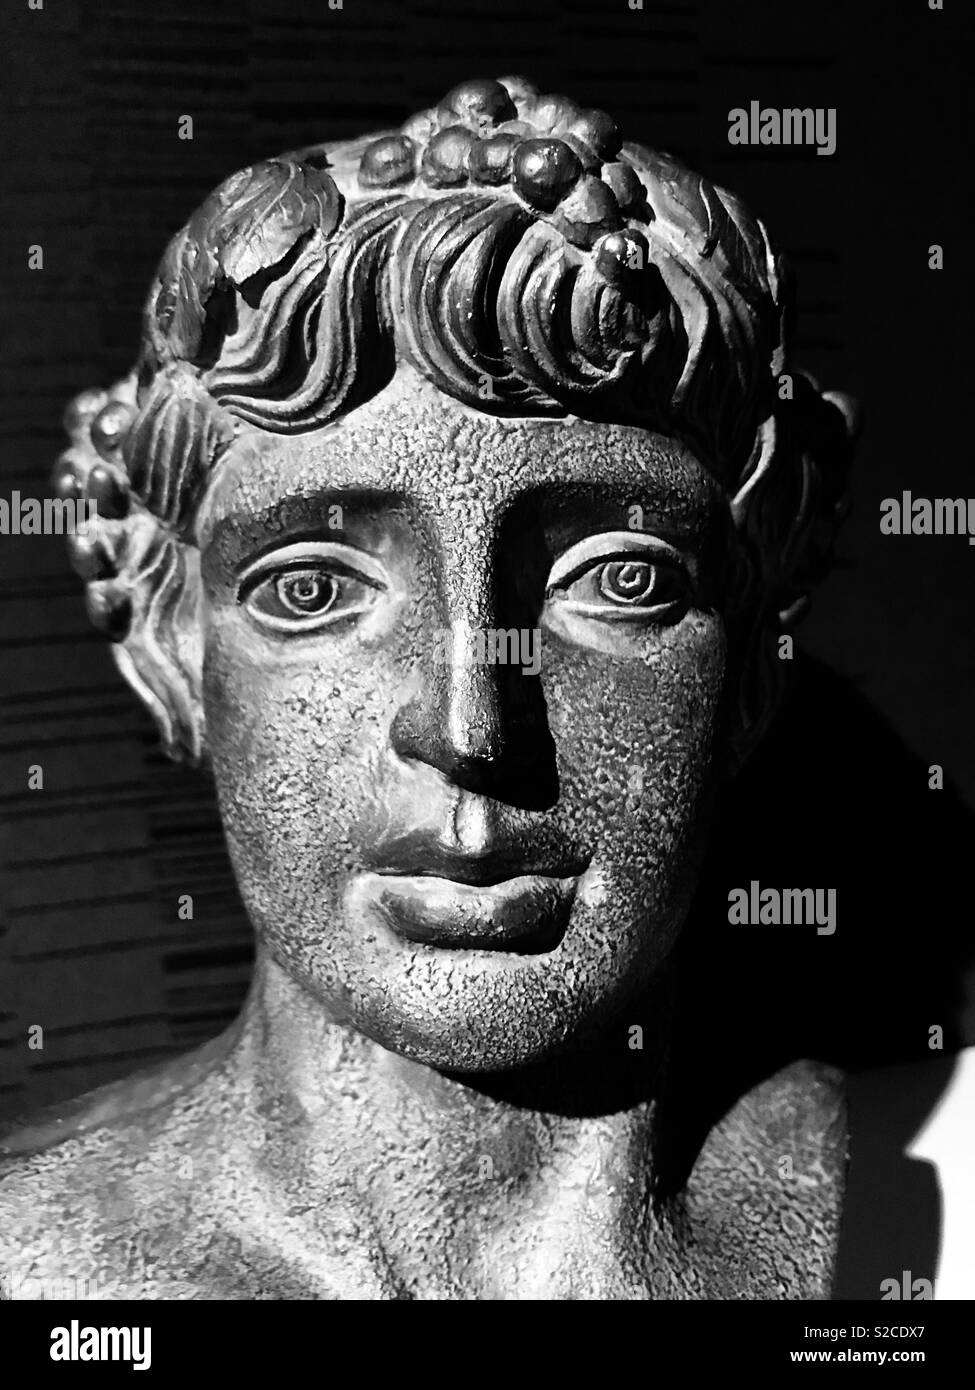 Sculpted Face Of Dionysus The Greek God Of Wine Harvesting And Wine Making Stock Photo Alamy